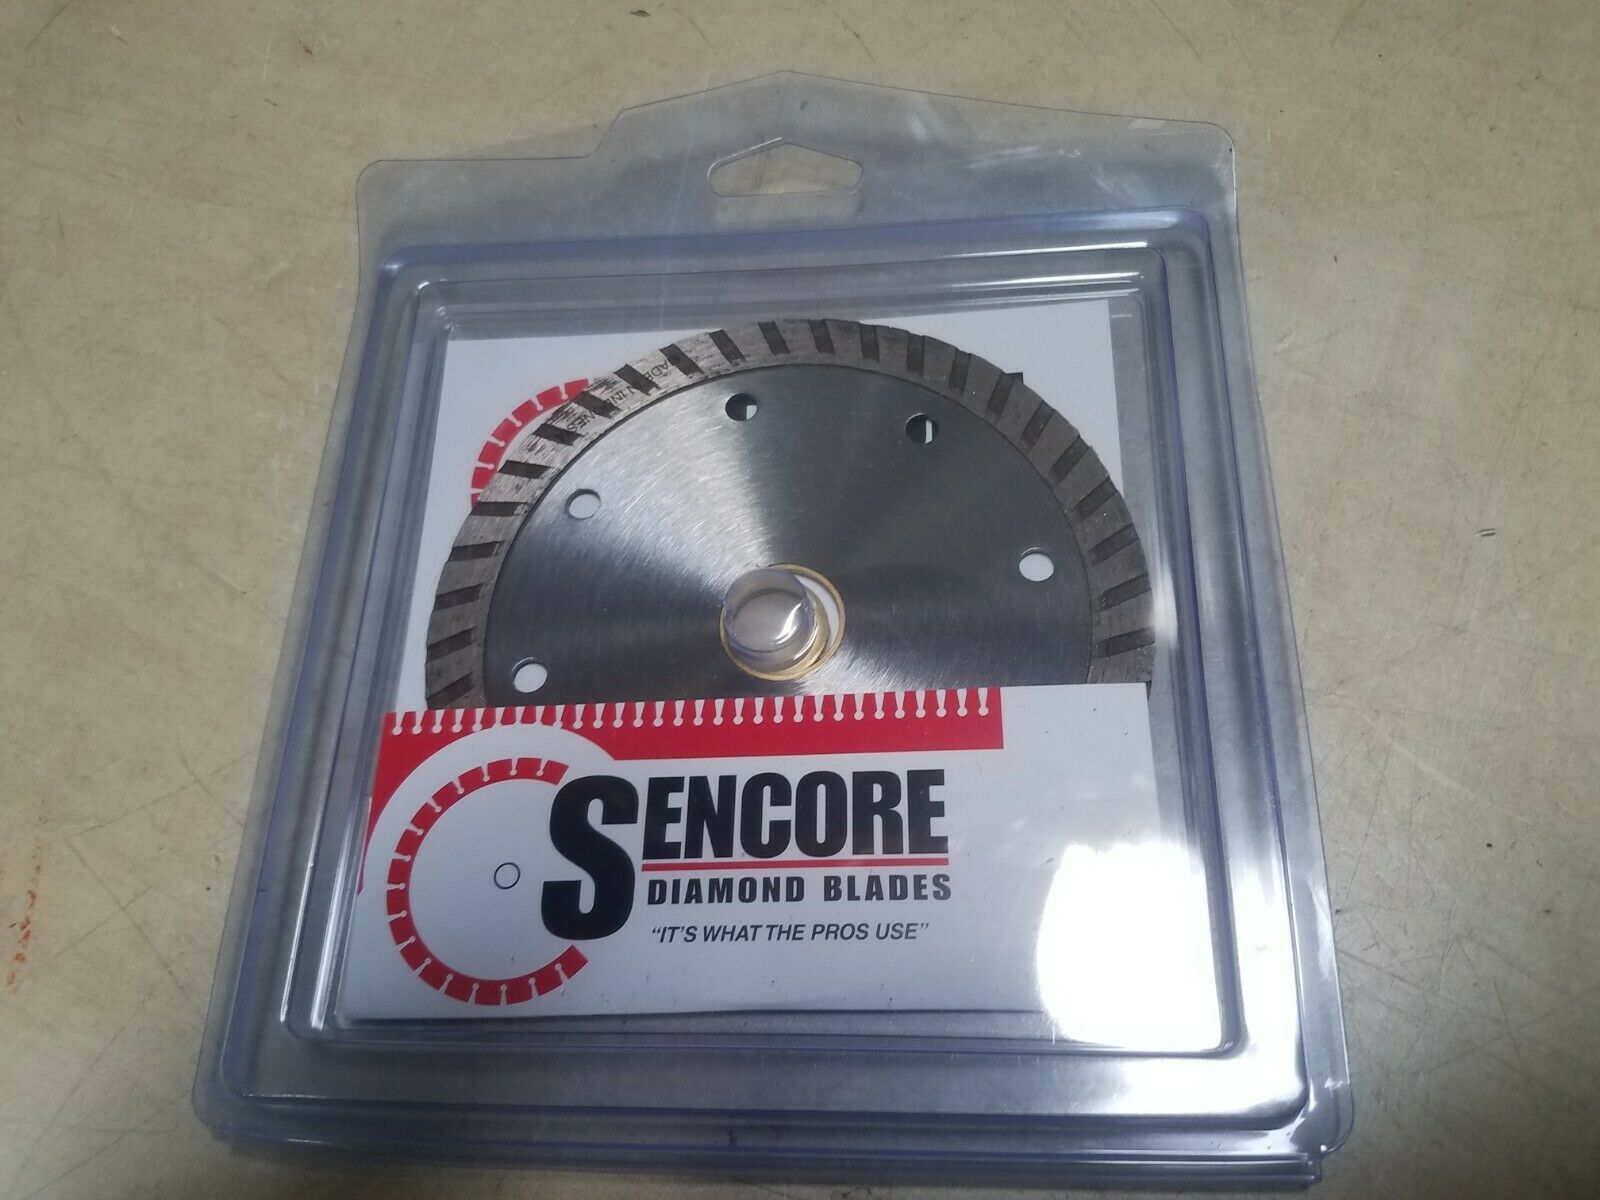 "Primary image for SENCORE Diamond Blades Grinder Blade 5"" 5/8-13/16-7/8 New"